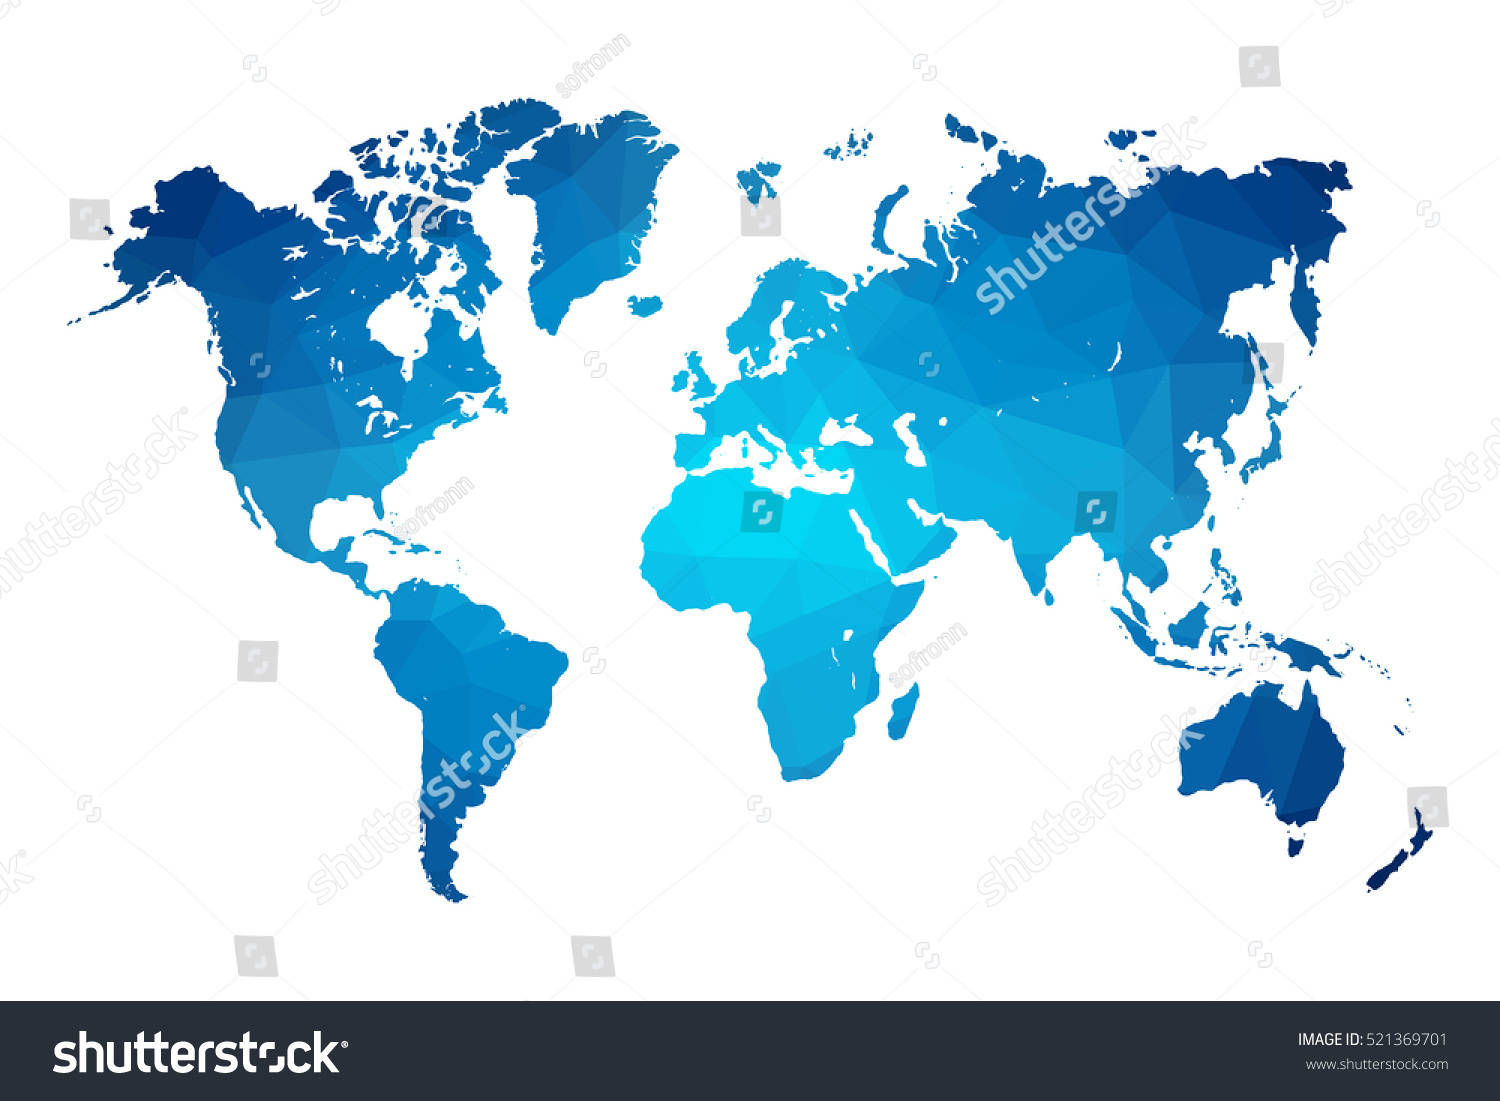 World map blue vector illustration polygonal vectores en stock world map blue vector illustration in polygonal style on white background vector illustration eps 10 gumiabroncs Images